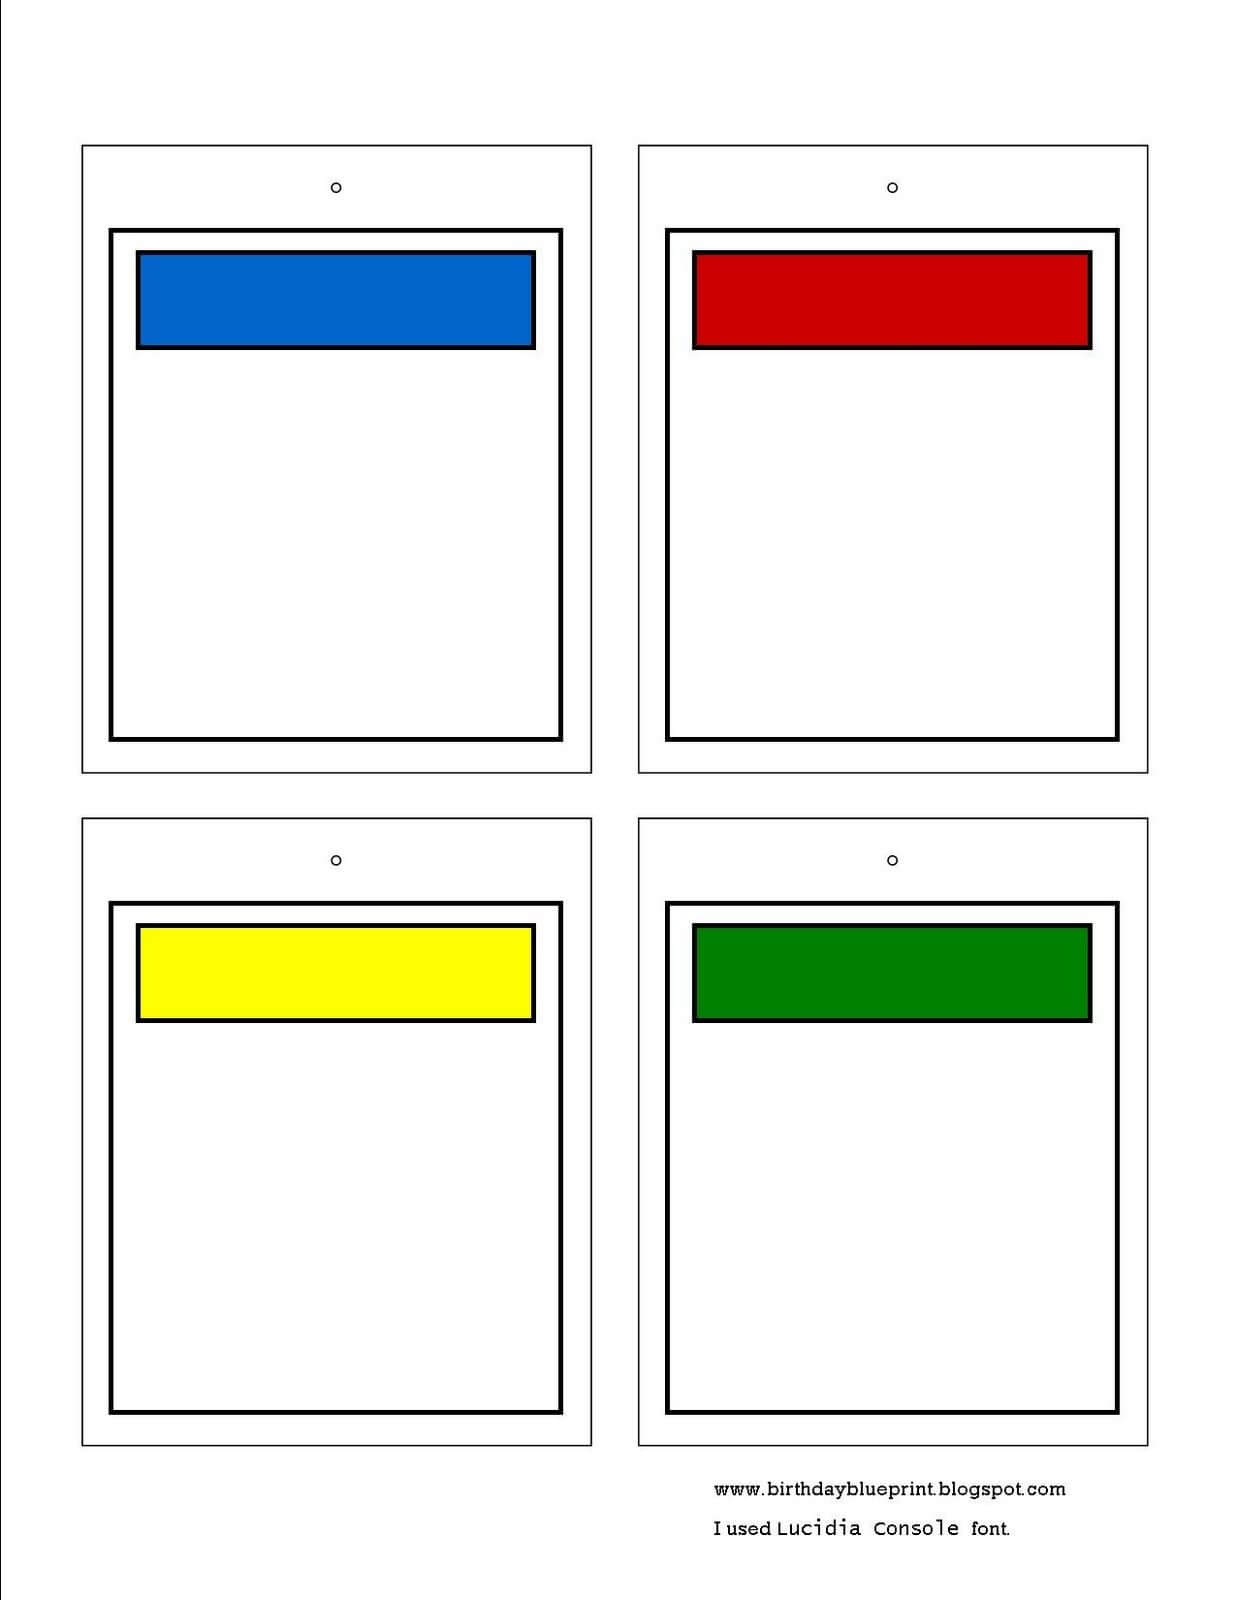 Blank Monopoly Property Cards. To Write In The Bible Memory throughout Monopoly Property Card Template